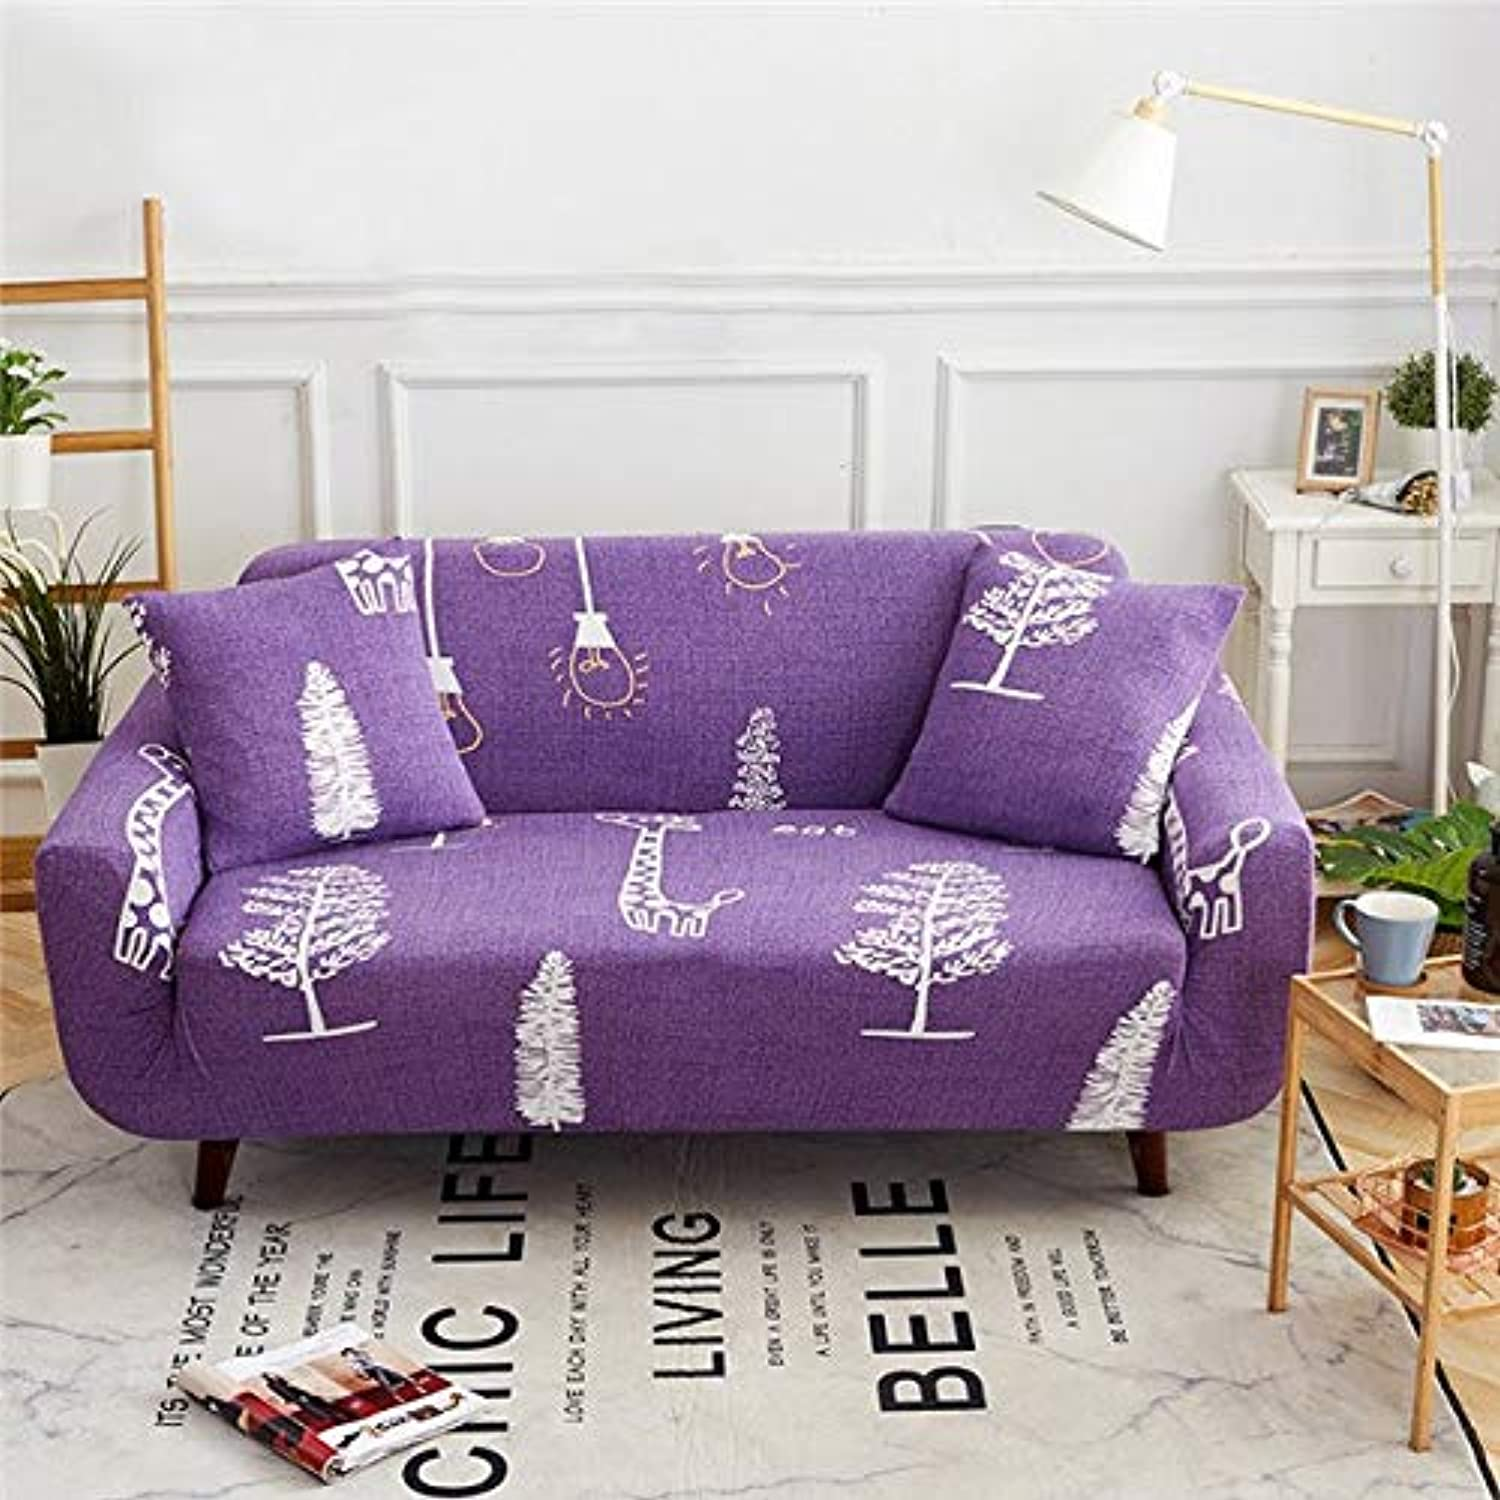 Spandex Sofa Bed Cover Stretch No armrests Tight Wrap Sofa Cover for Living Room Soft Slipcovers Elastic Couch Cover cubre Sofa   color 22, 160-190cm